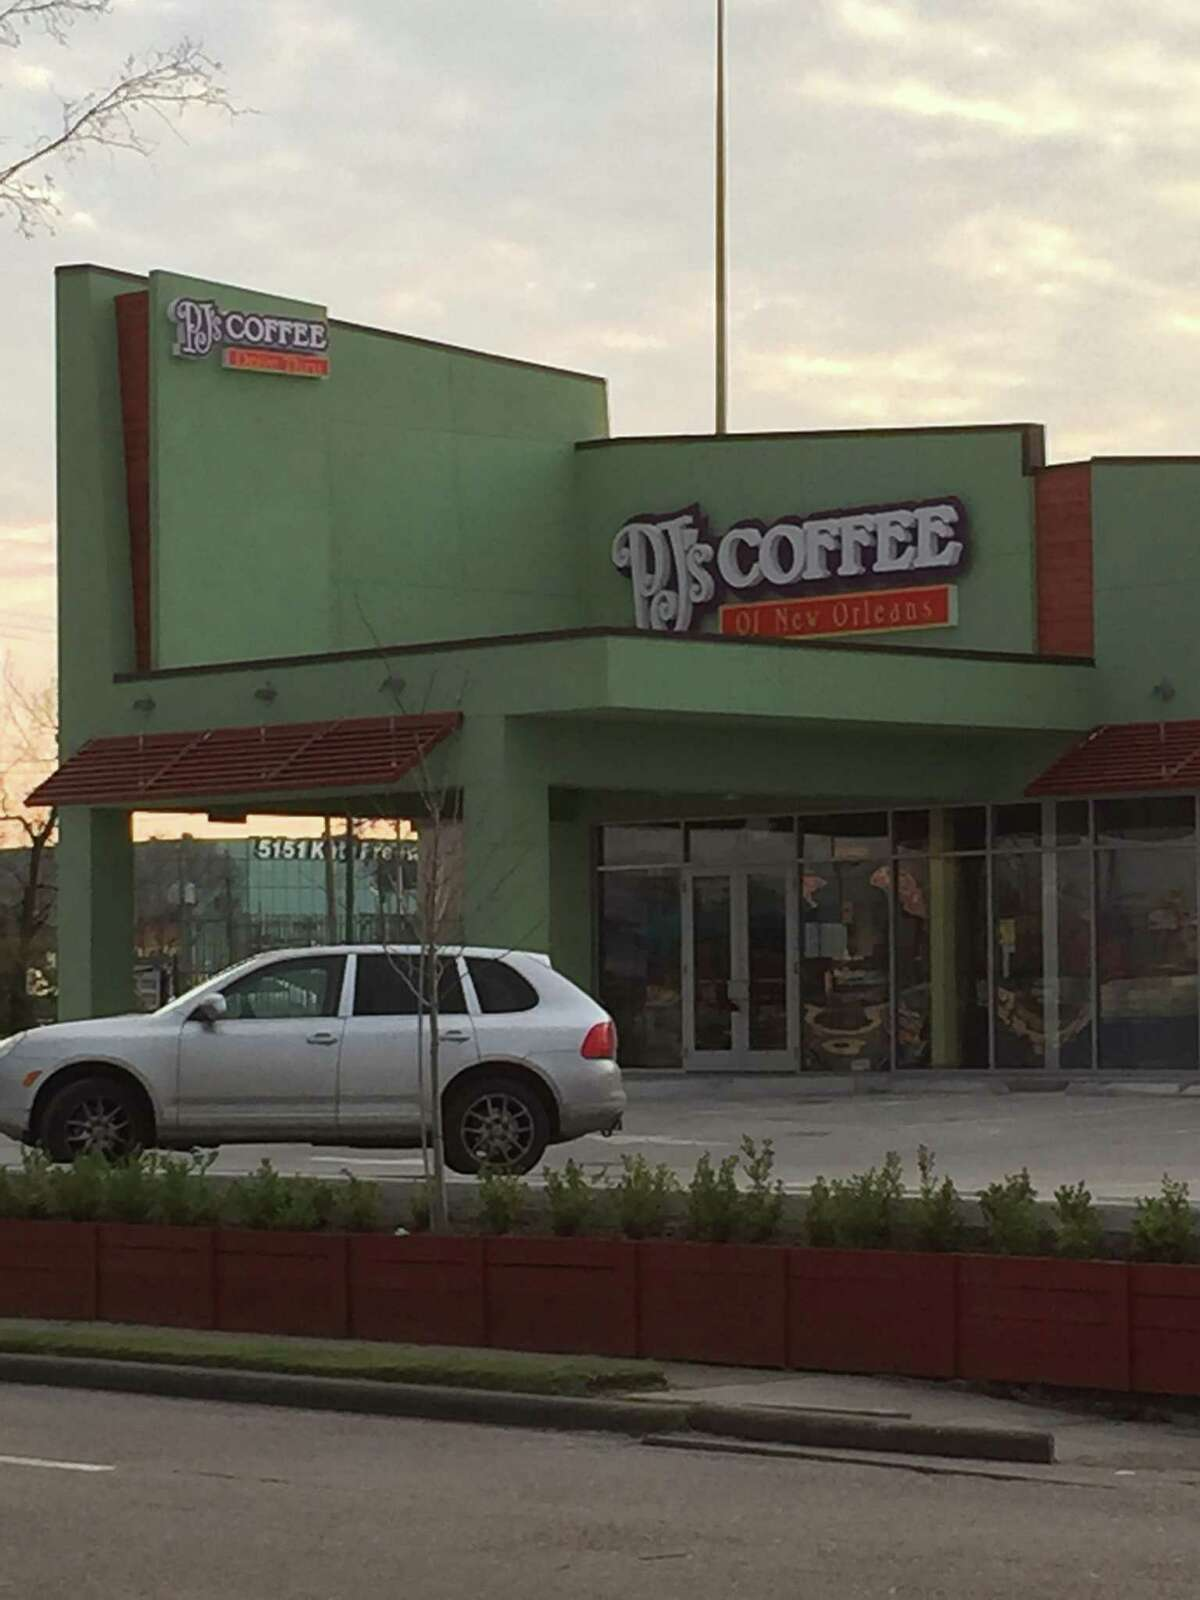 PJ's Coffee of New Orleans plans to open 180 new shops in Texas over the next 10 years.